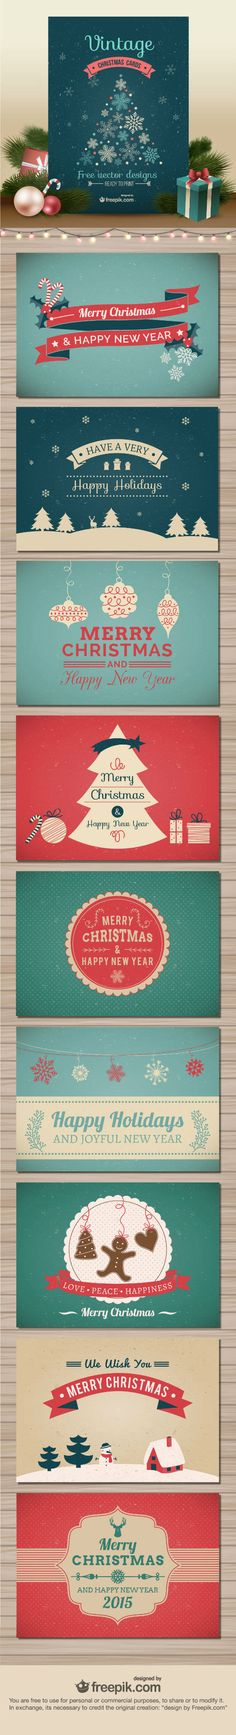 10 Free Vector Christmas Cards Created by Freepik; Exclusively Available Here